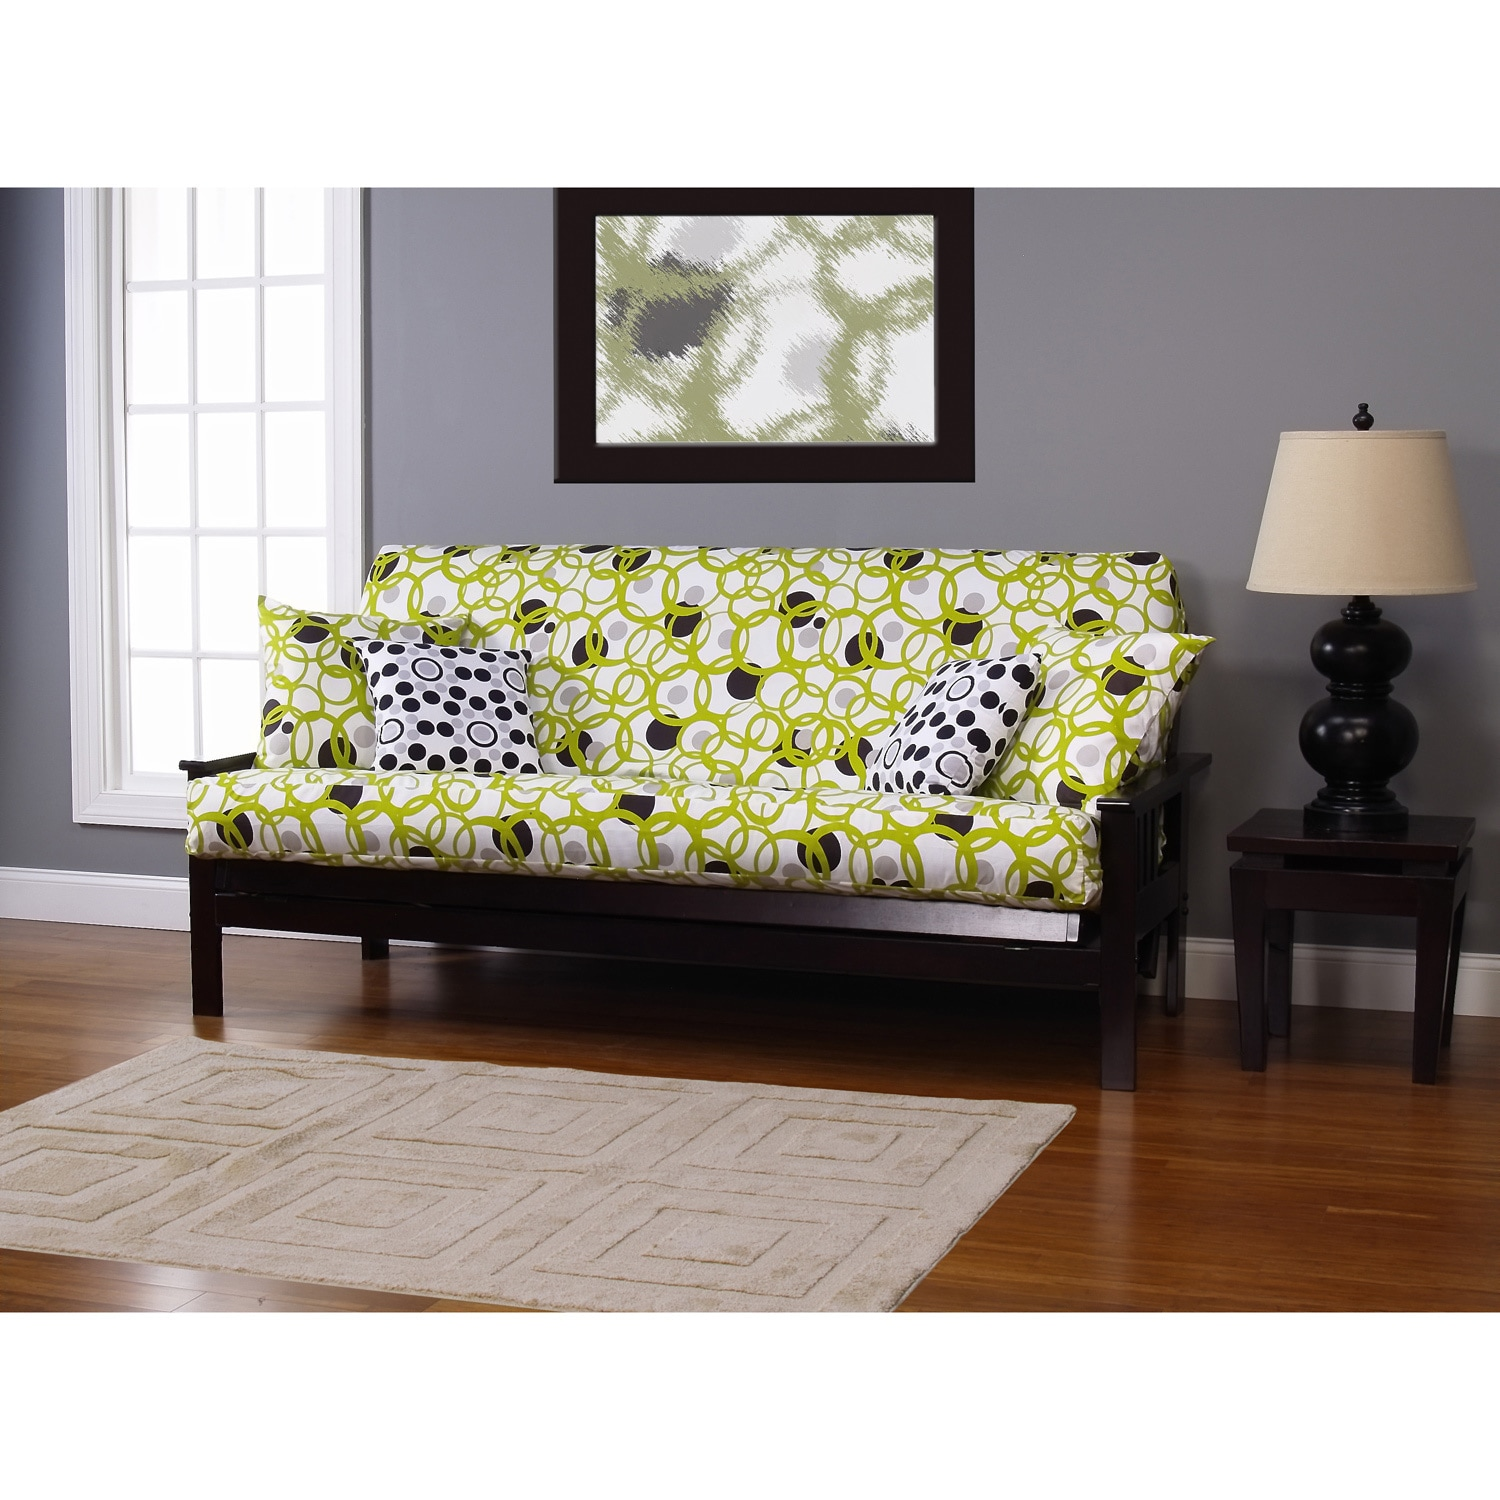 Siscovers Modern Circles Full Size Futon Cover Free Shipping Today Com 6559764